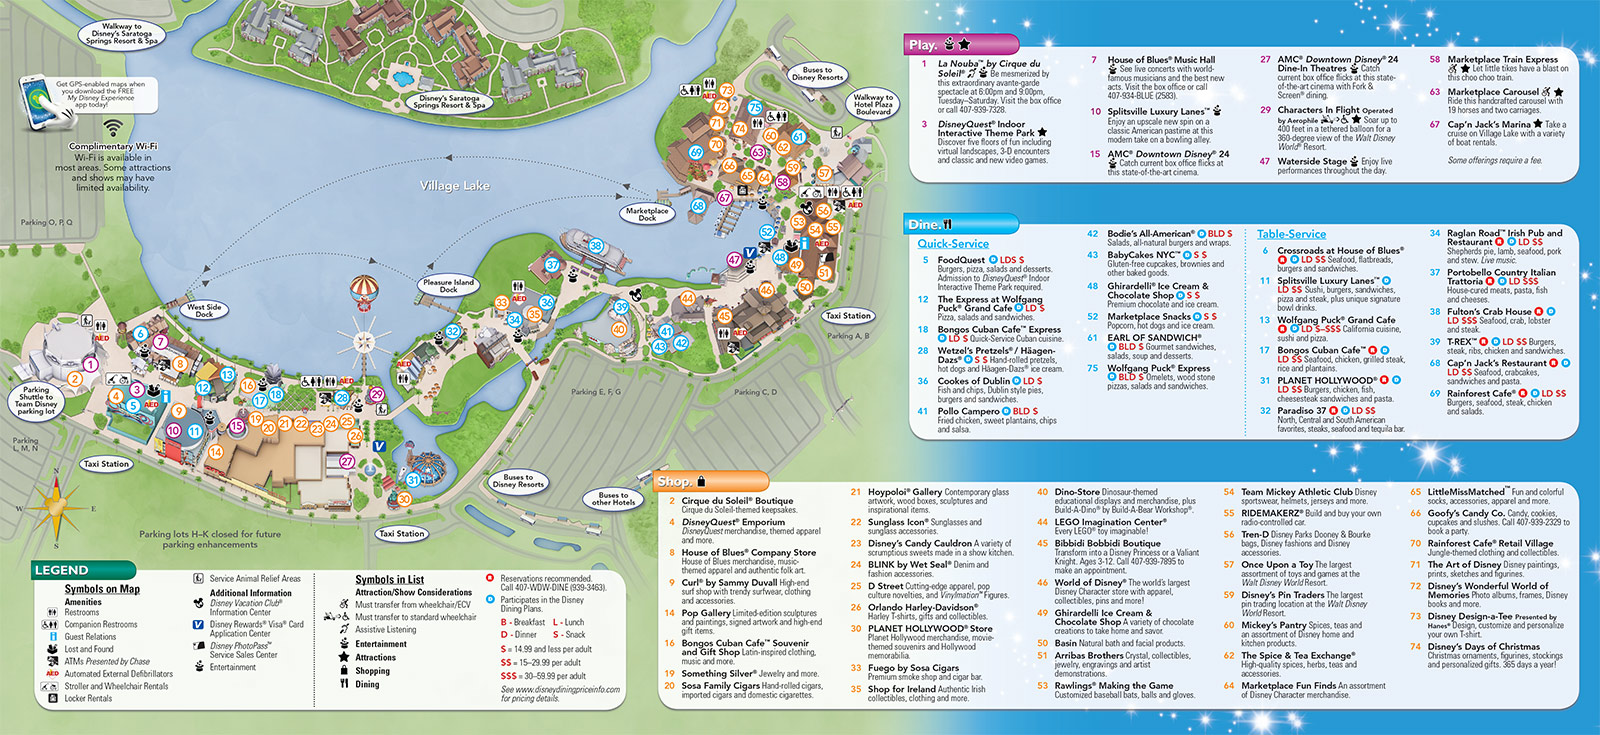 Updated Downtown Disney guide map featuring Pleasure Island demolition